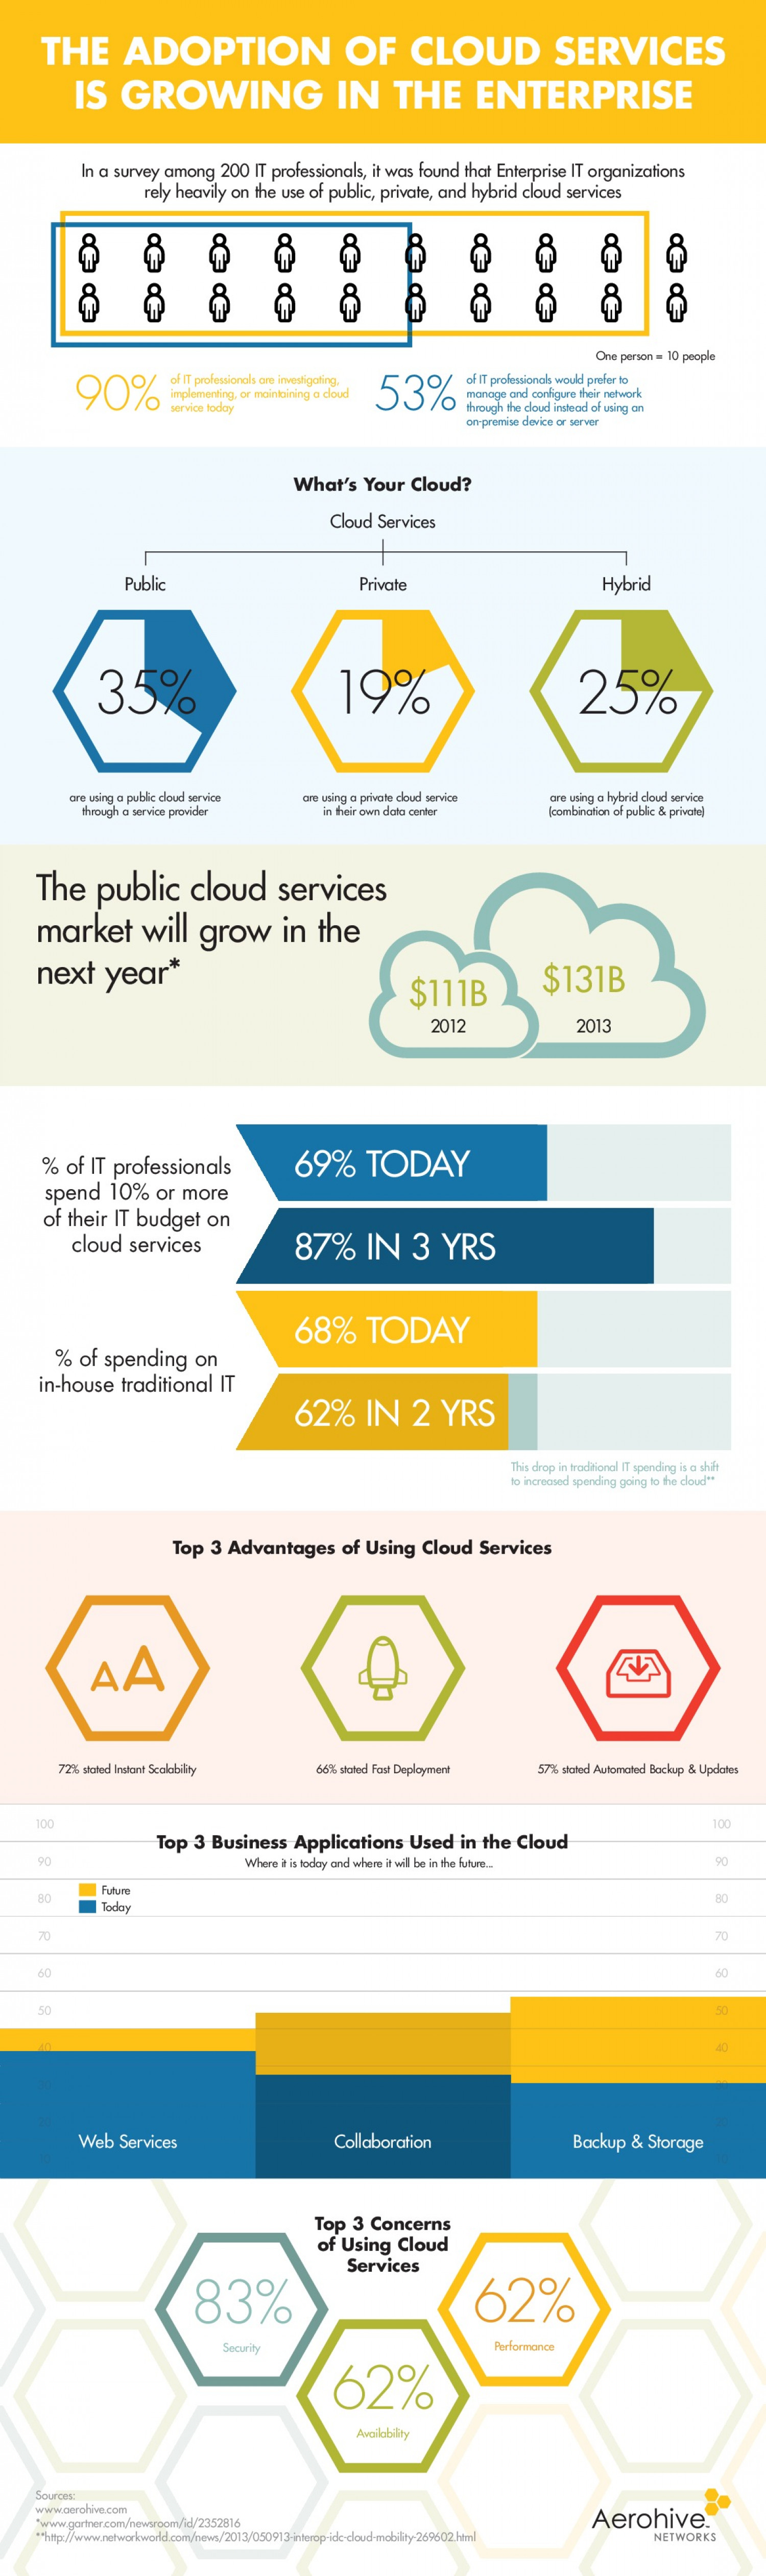 The Adoption of Cloud Services is Growing in the Enterprise Infographic